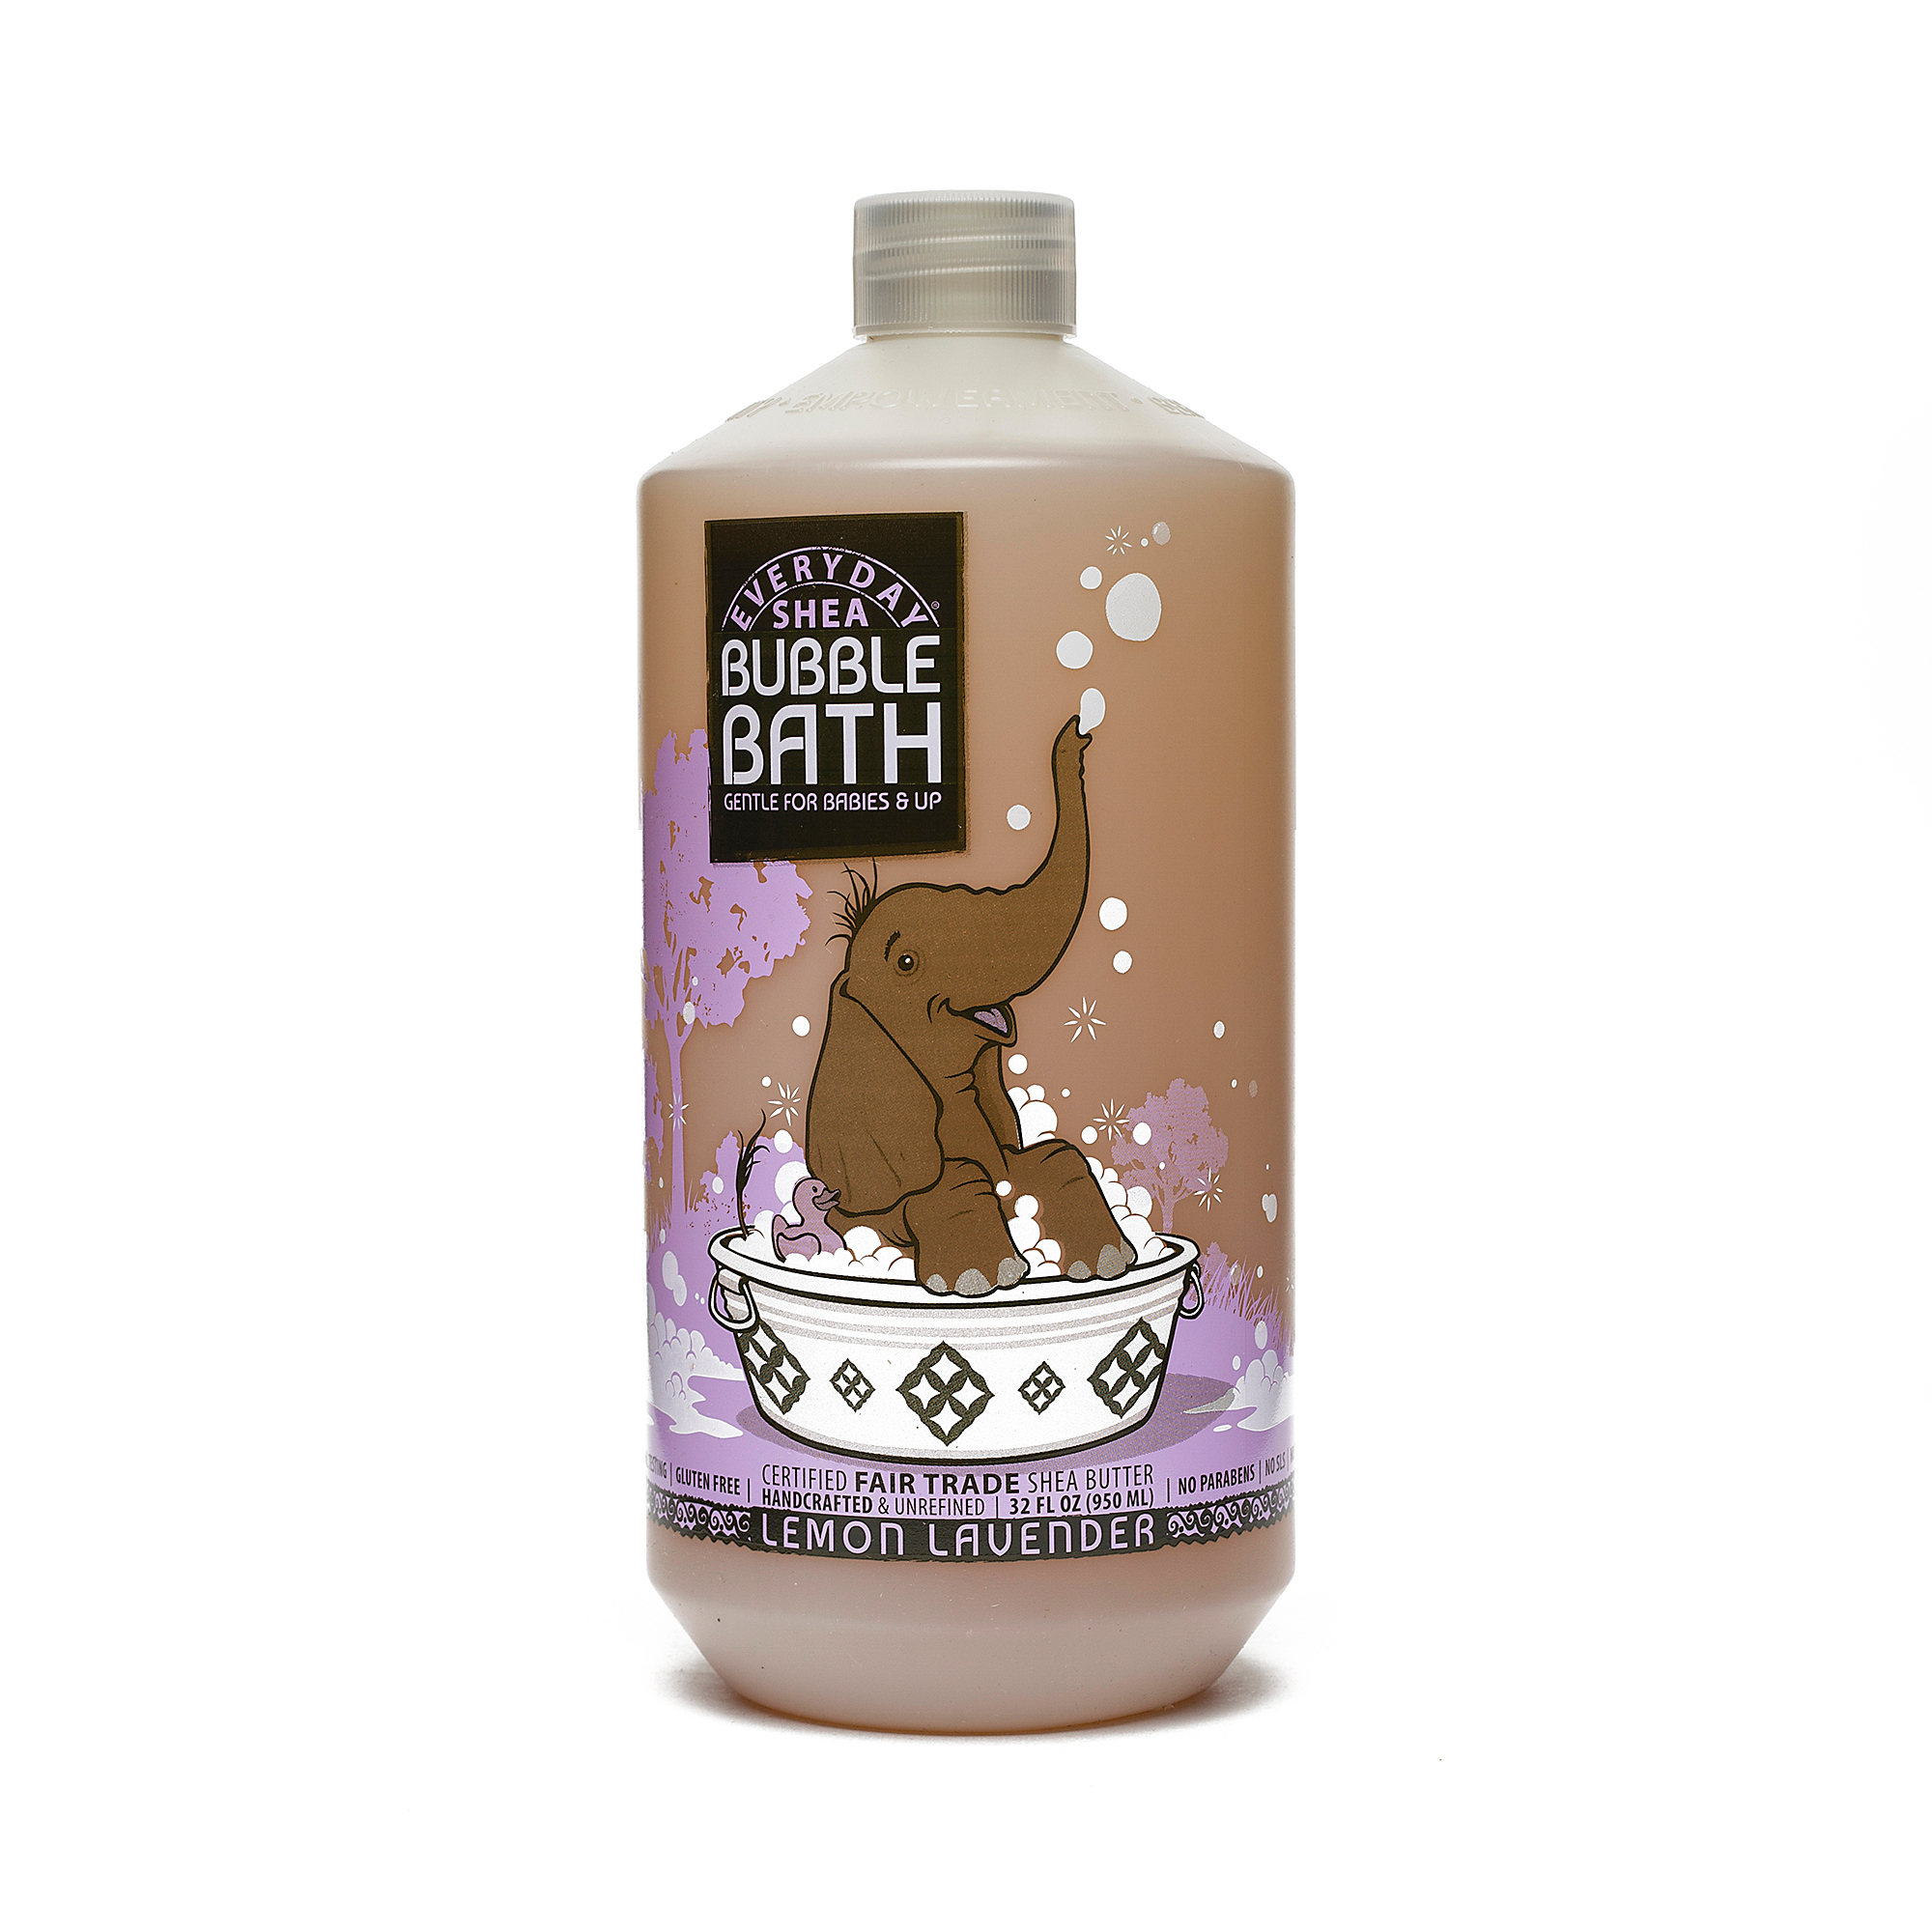 Everyday Shea Shea Butter Bubble Bath for Babies and Up Calming Lemon -- 32 fl